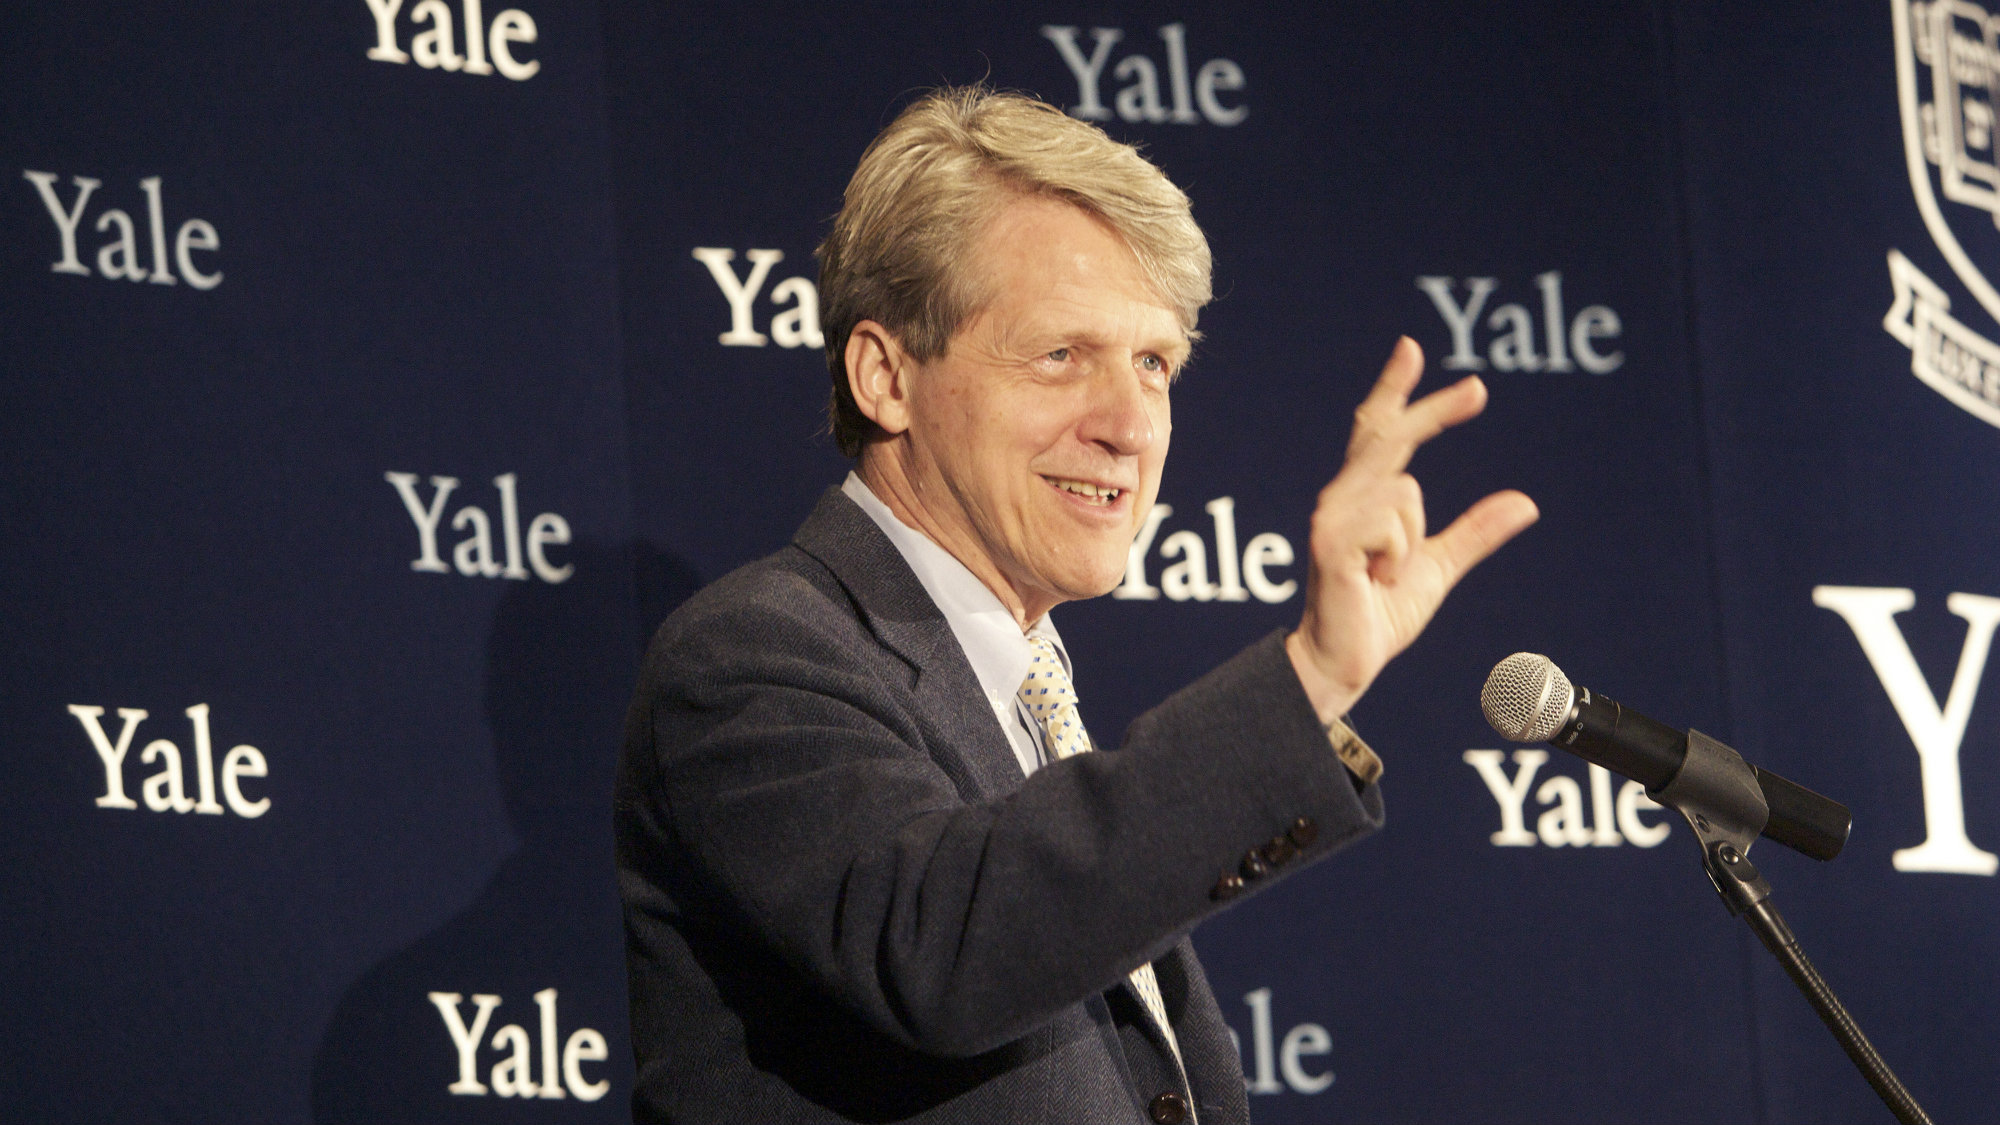 2013Robert Shiller, one of three American scientists who won the 2013 economics Nobel prize, attends a press conference in New Haven, Connecticut